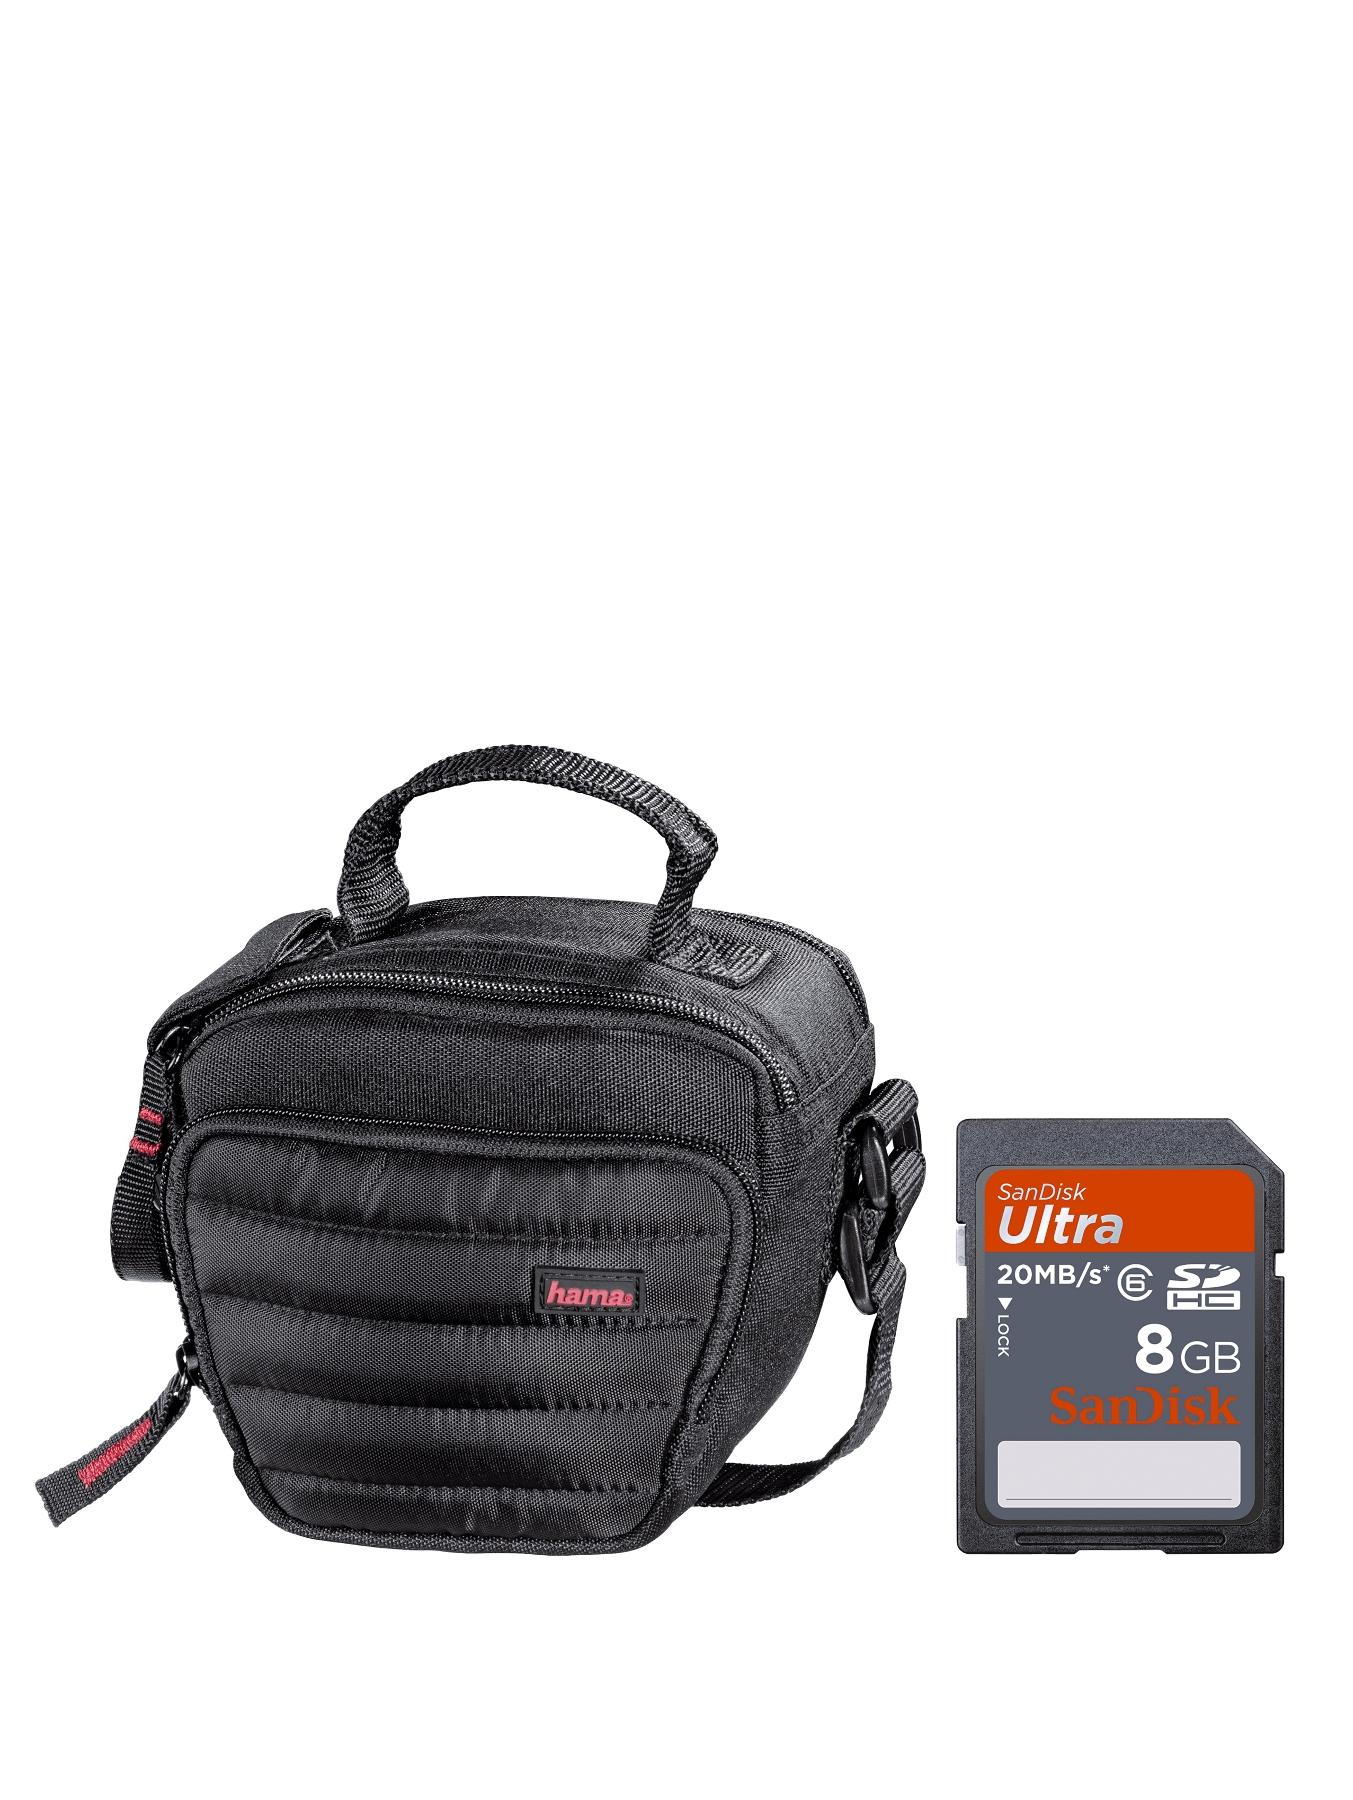 HAMA Bridge Bundle with SanDisk 8Gb Ultra SD Card and Hama Syscase 90 Colt Camera Bag - Black at Very, from Littlewoods